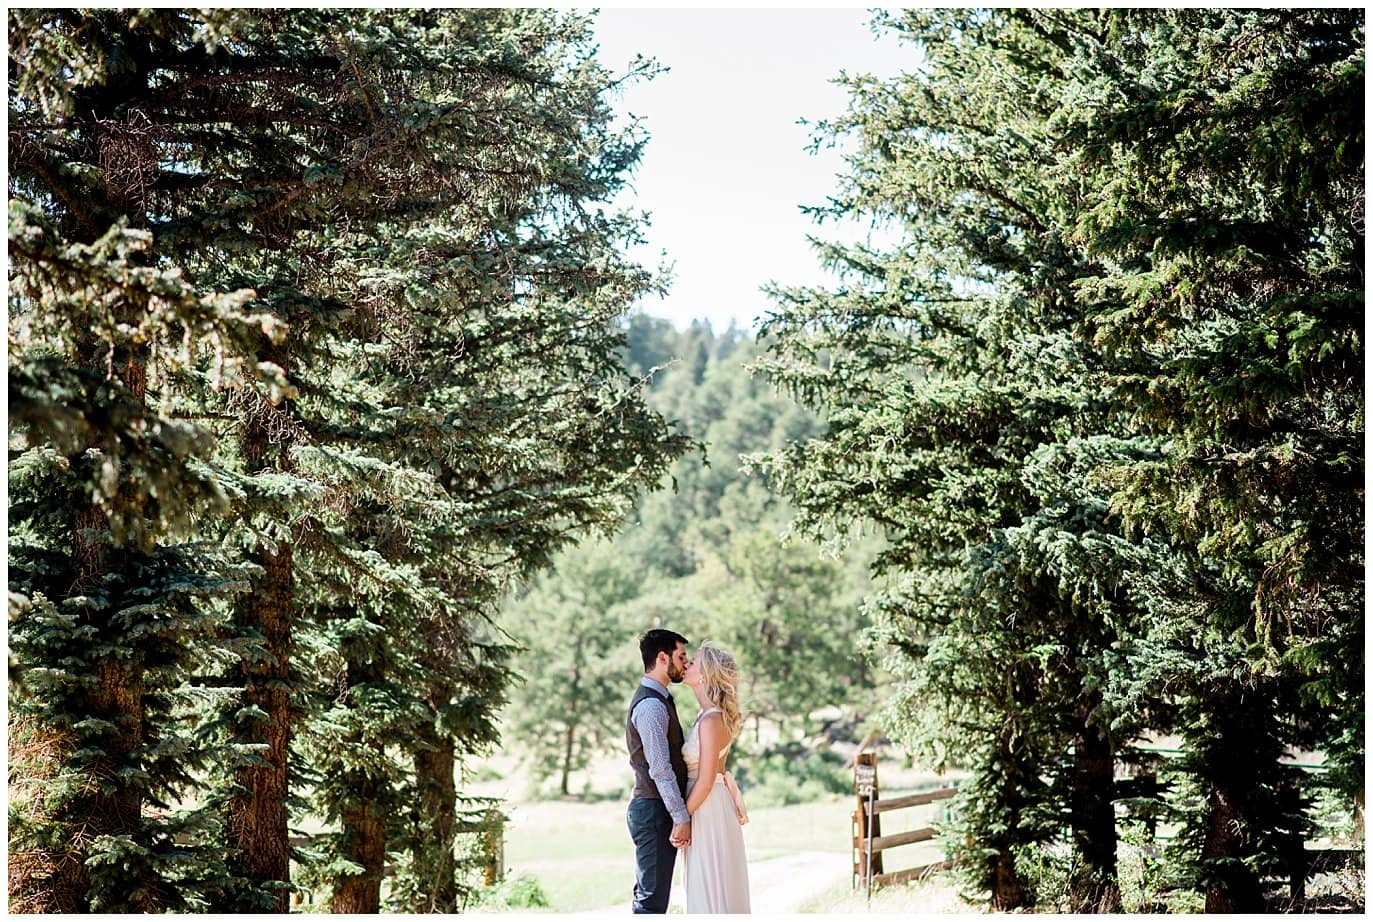 Colorful bride and groom portrait in evergreen trees at Deer Creek Valley Ranch wedding by Boulder Wedding Photographer Jennie Crate Photographer